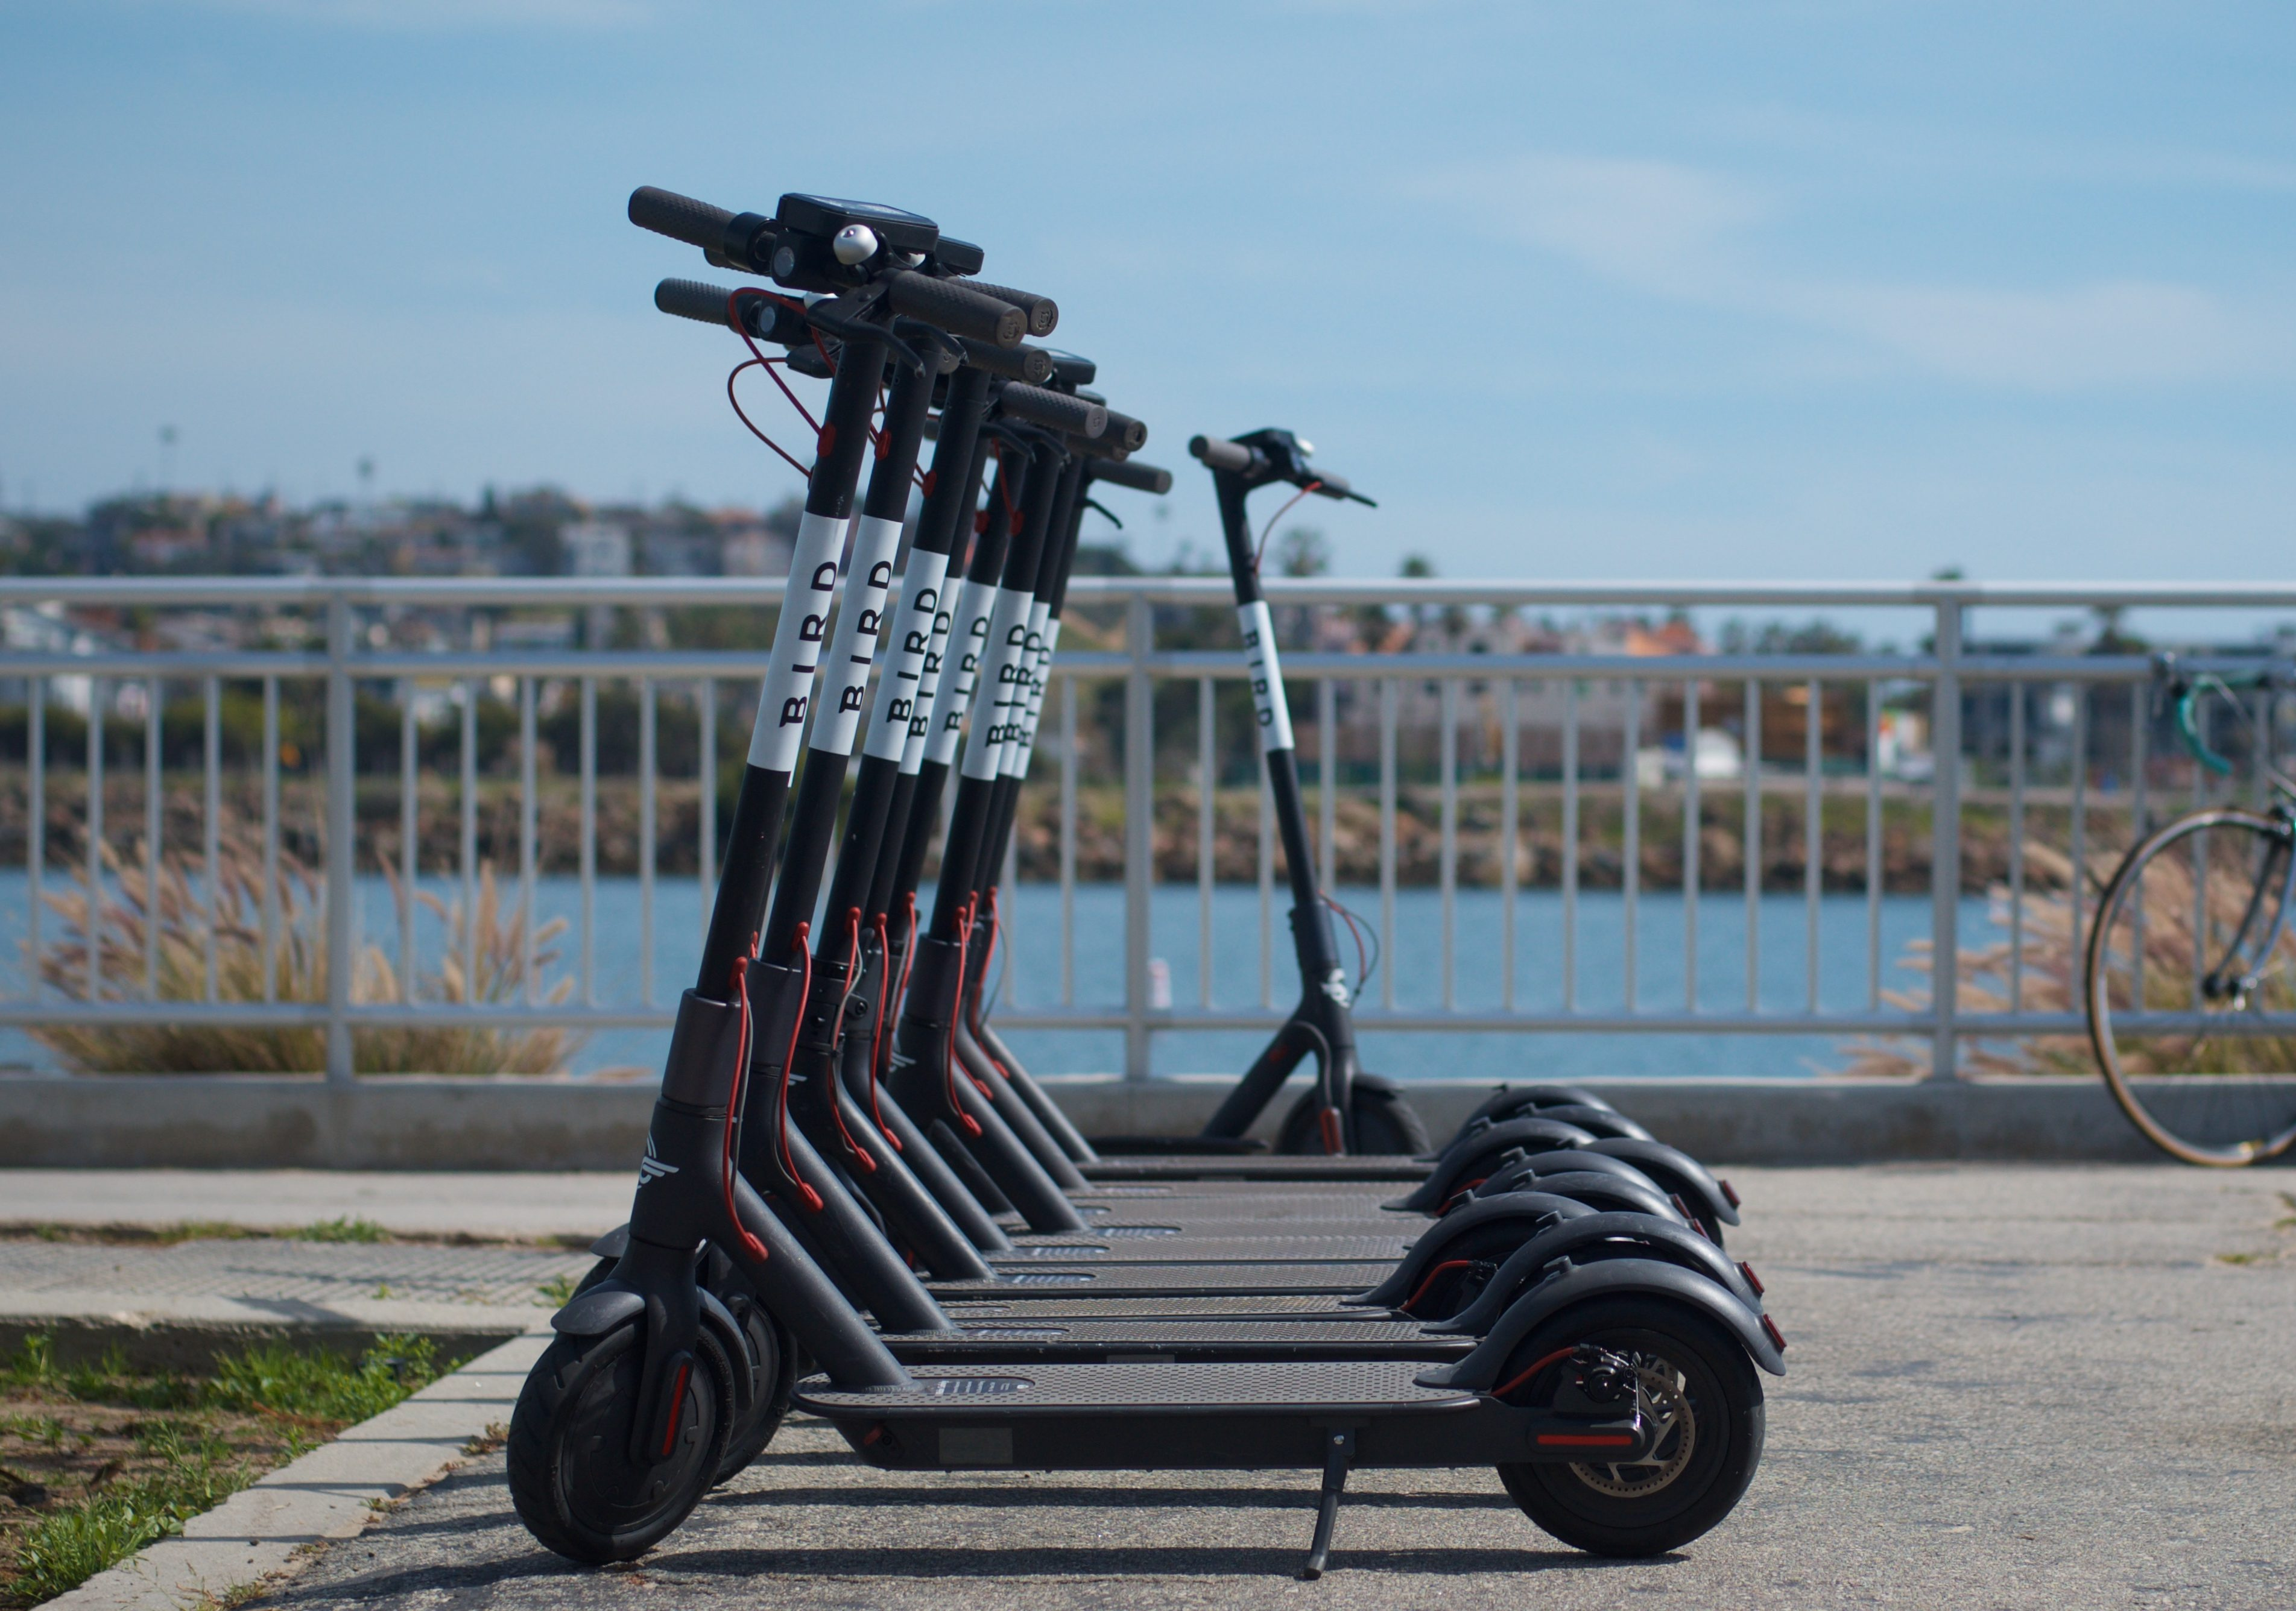 There are city bikes to rent in Poland and Xiaomi scooters in the US